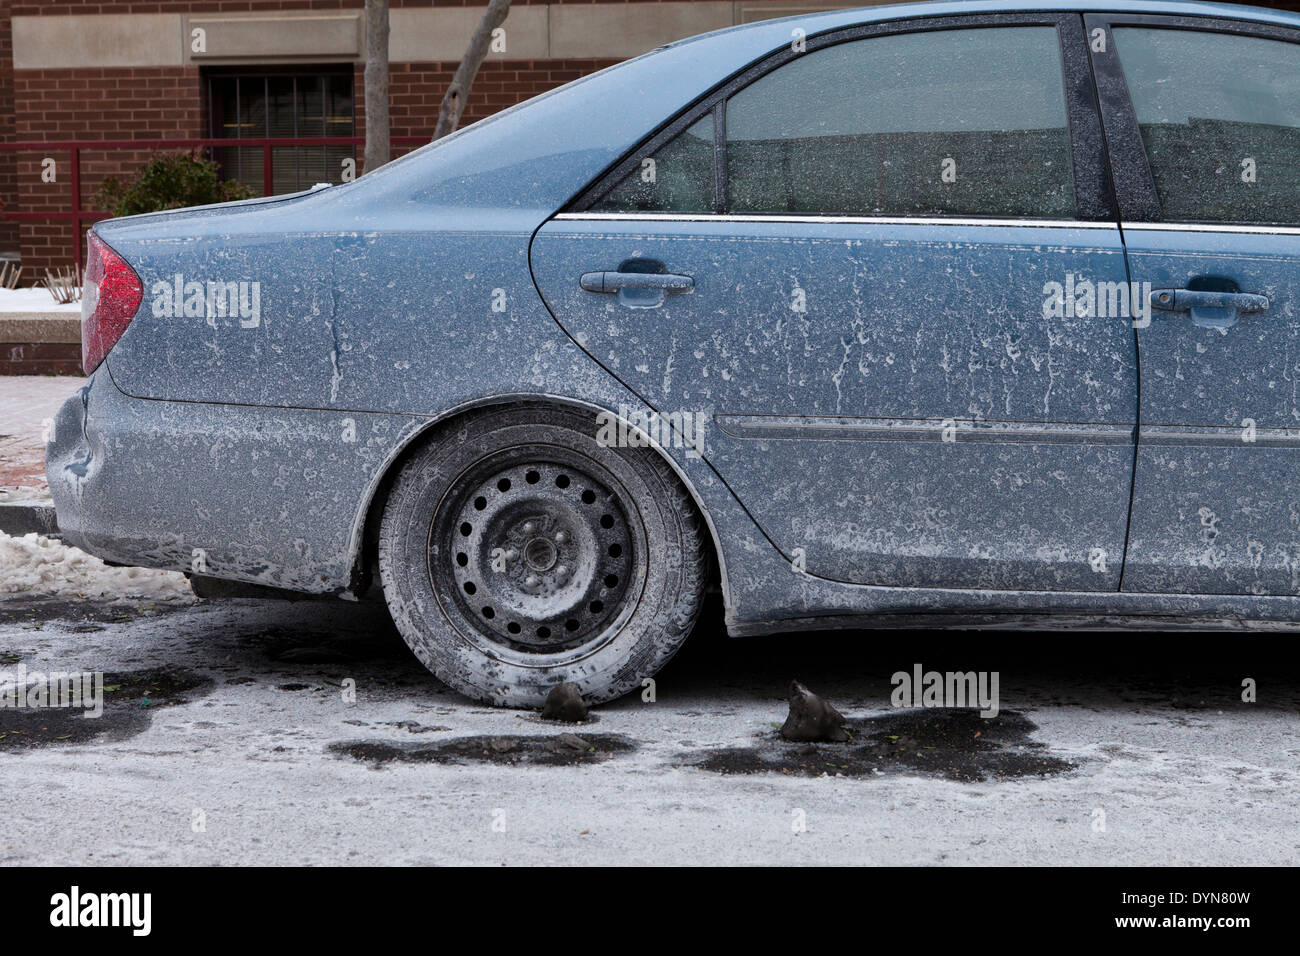 Road Salt Stock Photos & Road Salt Stock Images - Alamy